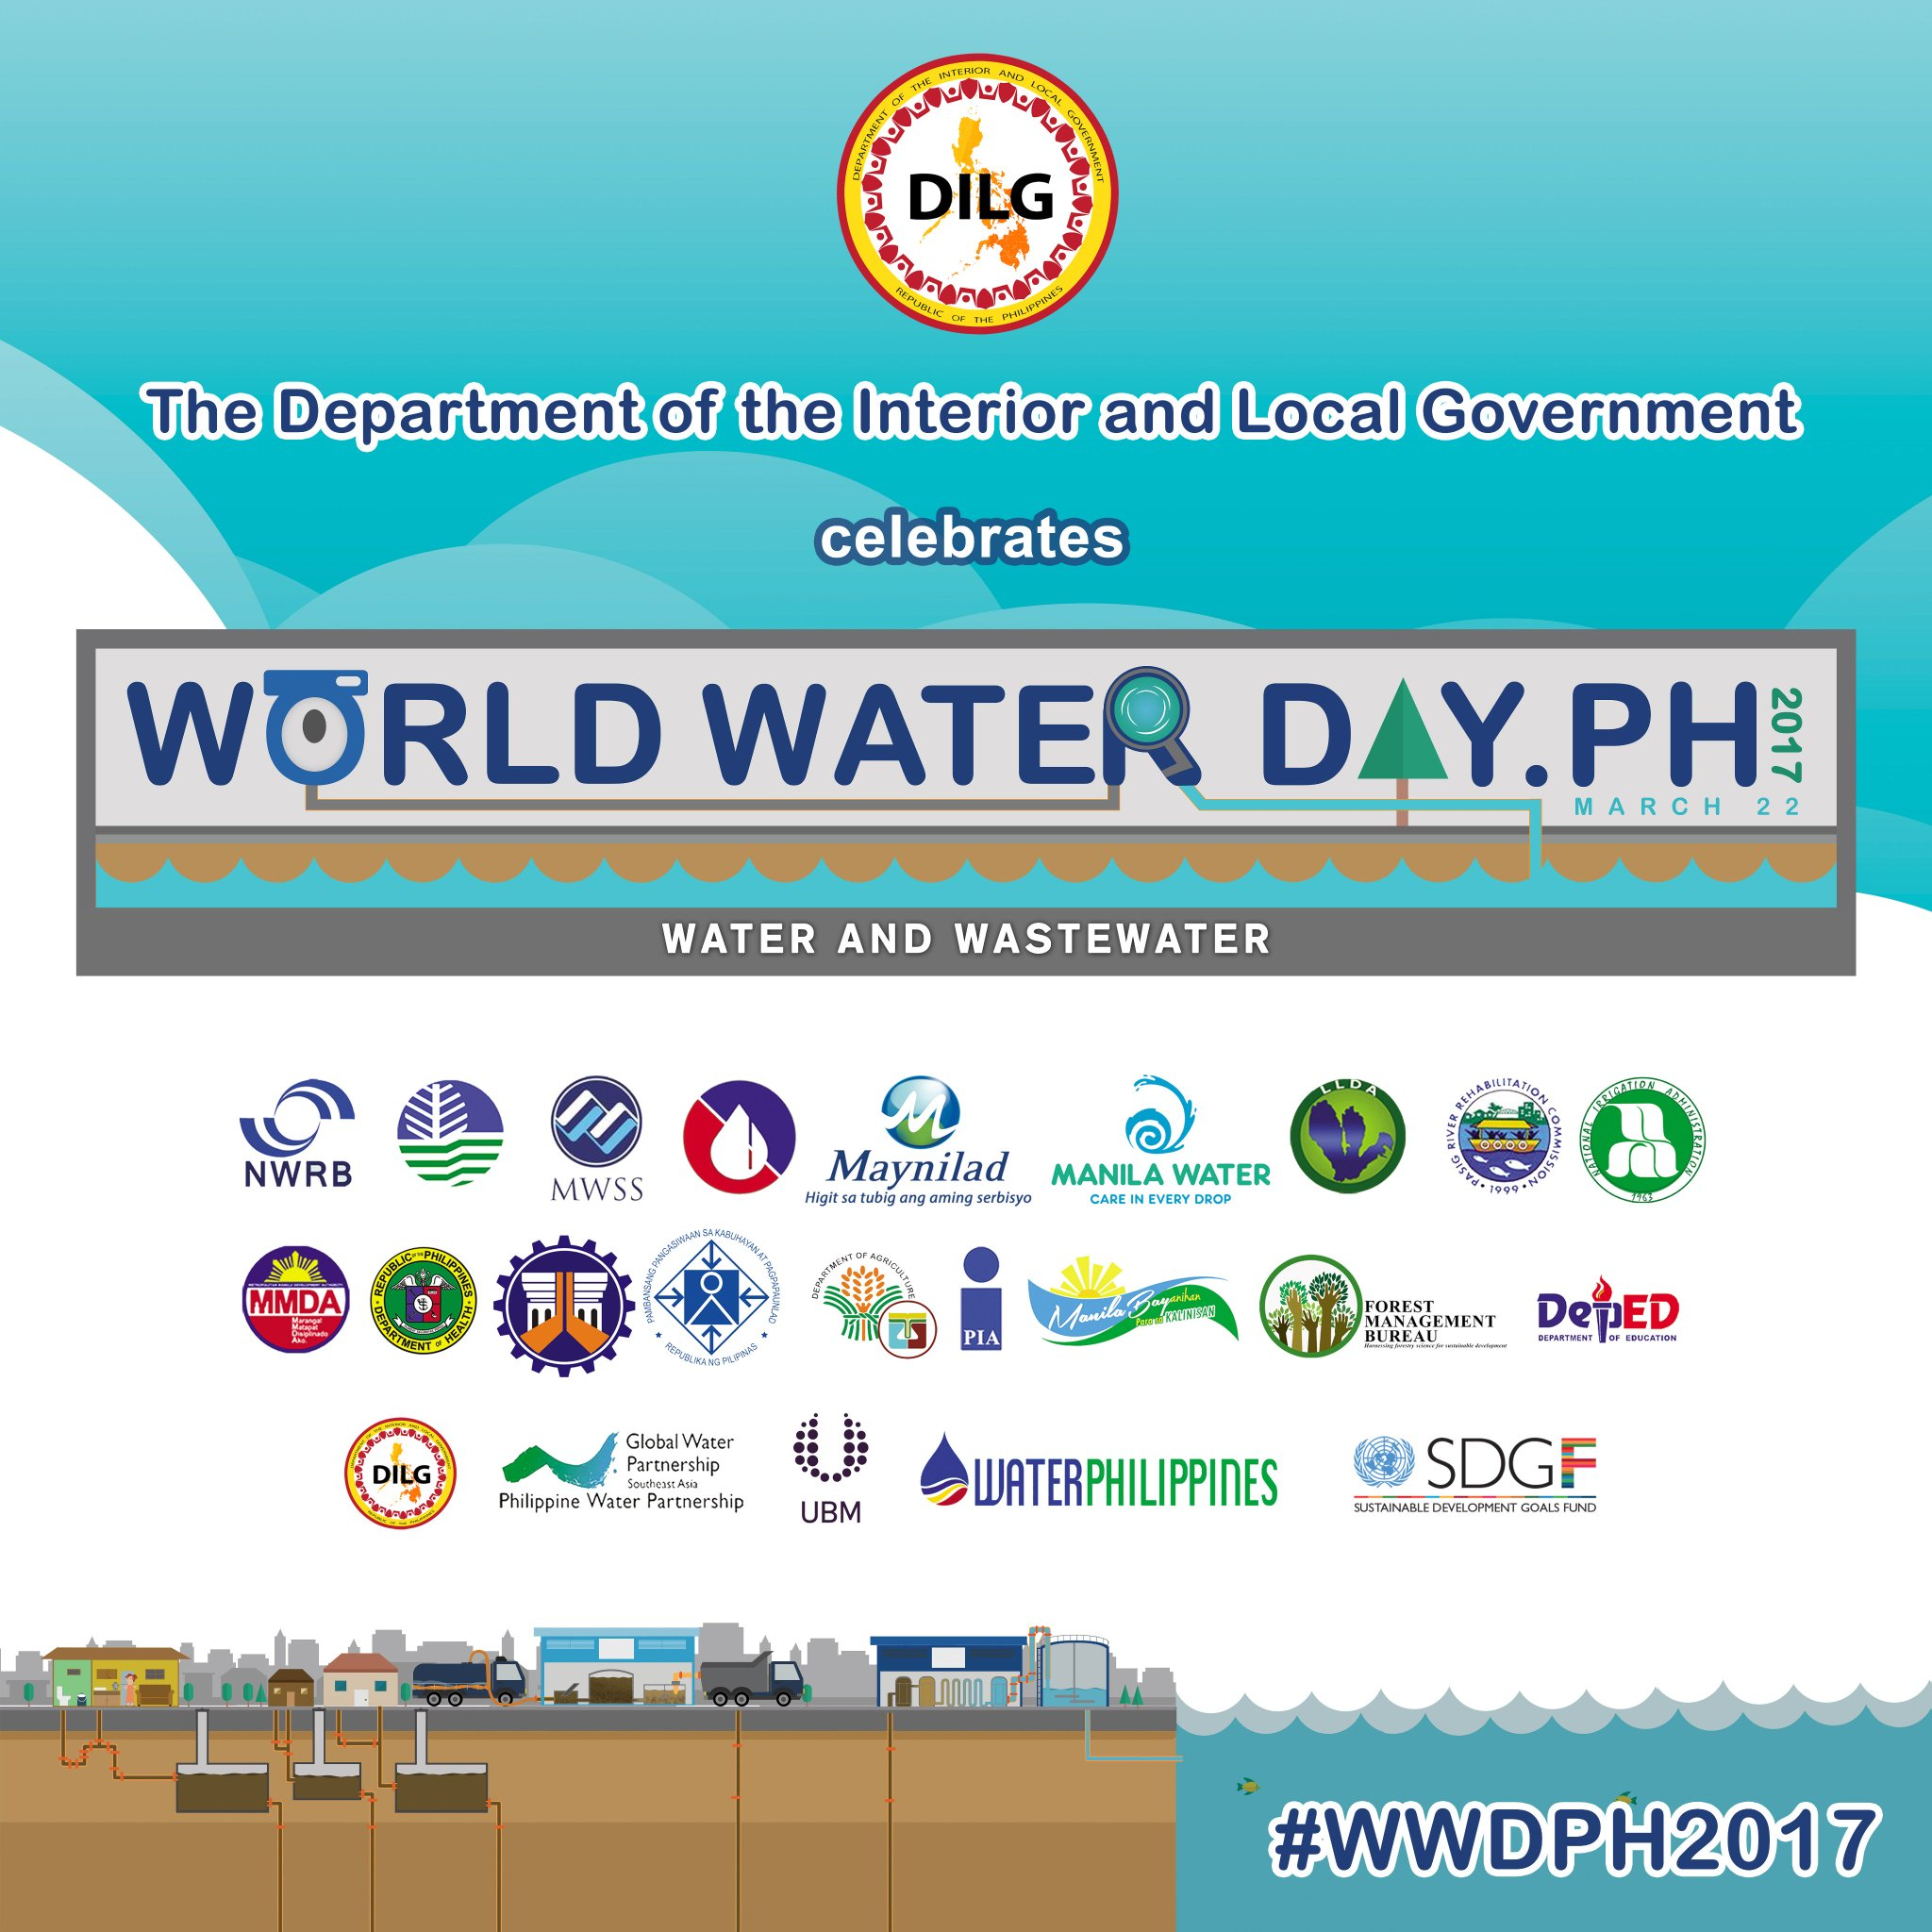 The DILG is one with the nation in celebrating the World Water Day! #WWDPH2017 https://t.co/OoaKGvlNZM